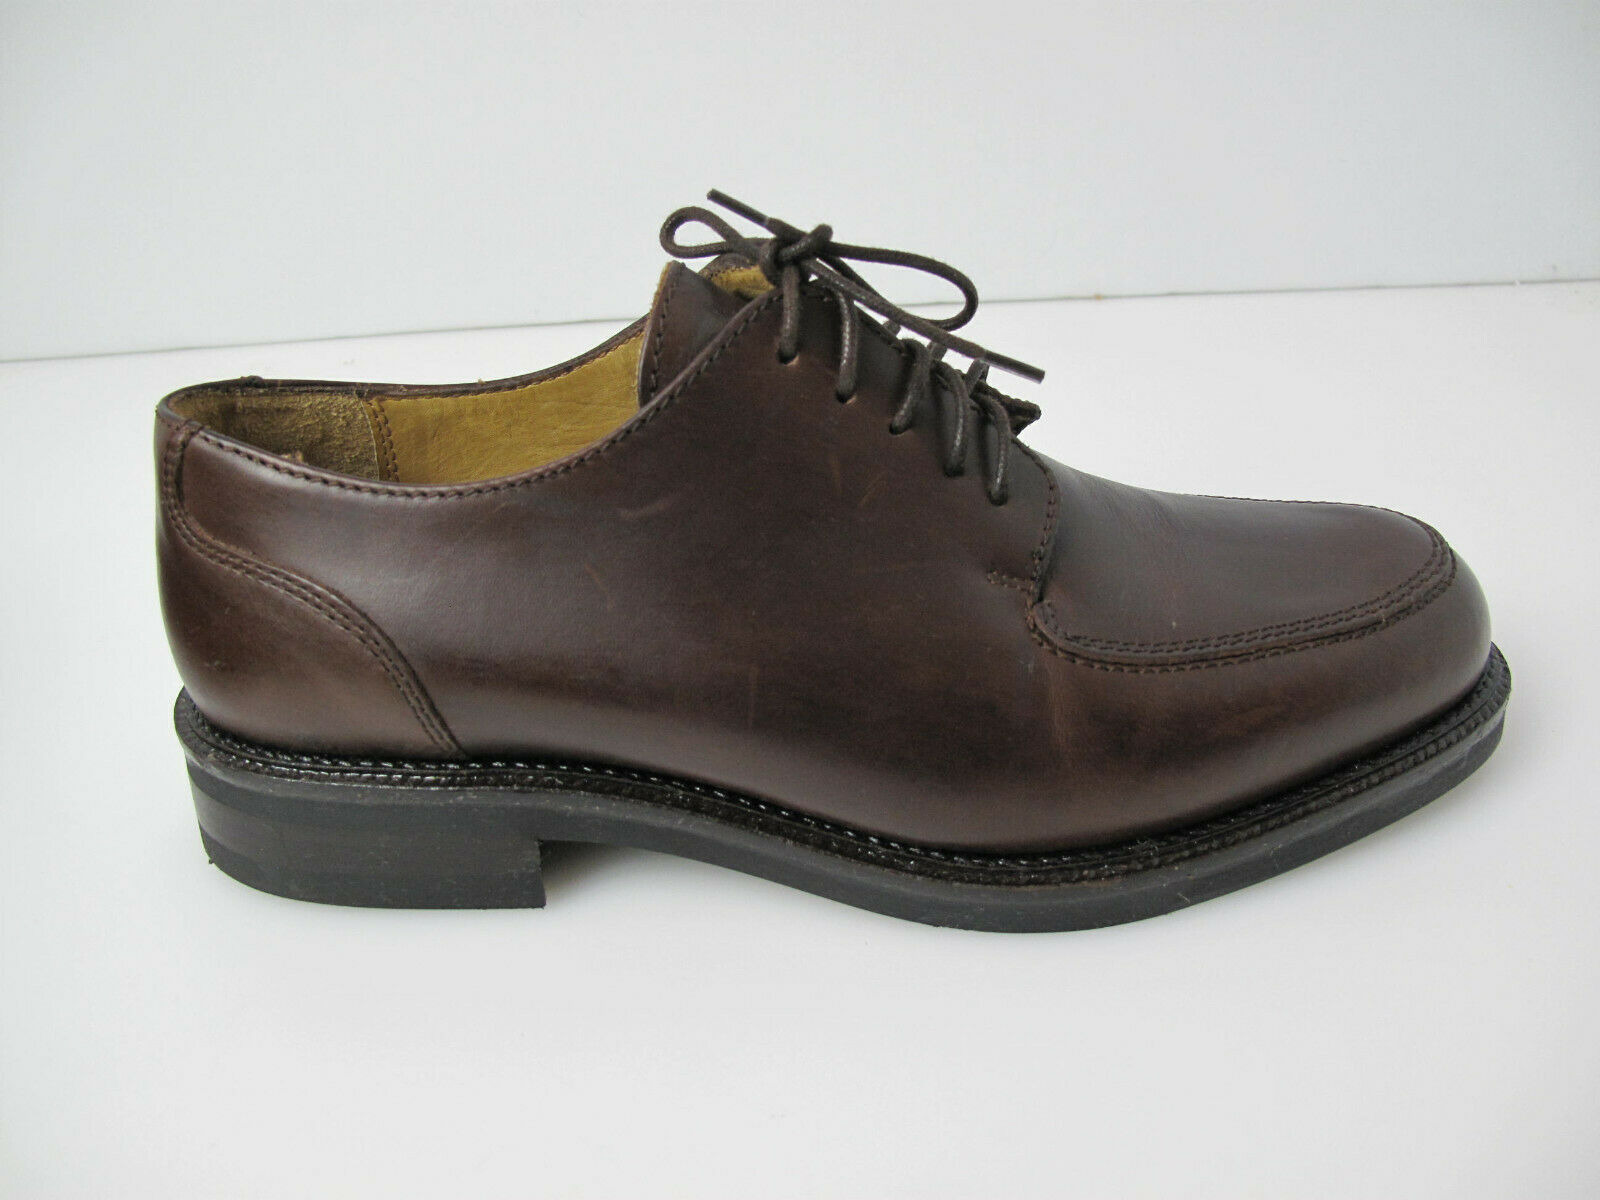 Kenneth Cole New York brown Italian oxfords Mens dress formal shoes Size 11 5586